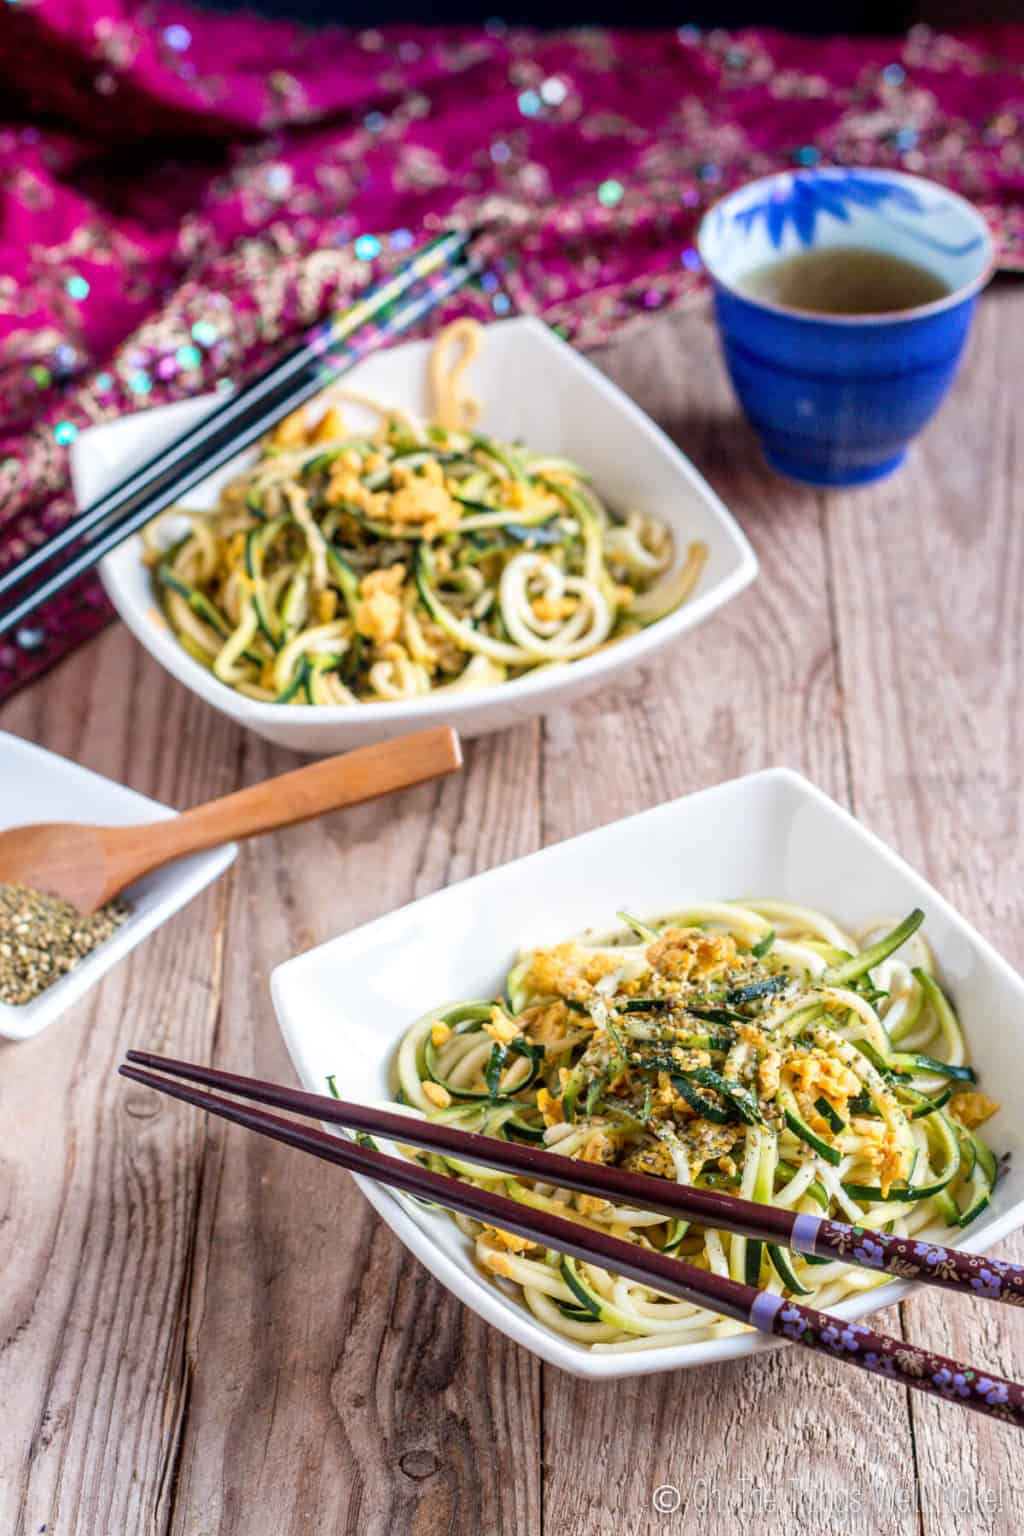 Two white square bowls filled with  pan fried zucchini noodles garnished with eggs, and have black chopsticks on the side of the bowls.